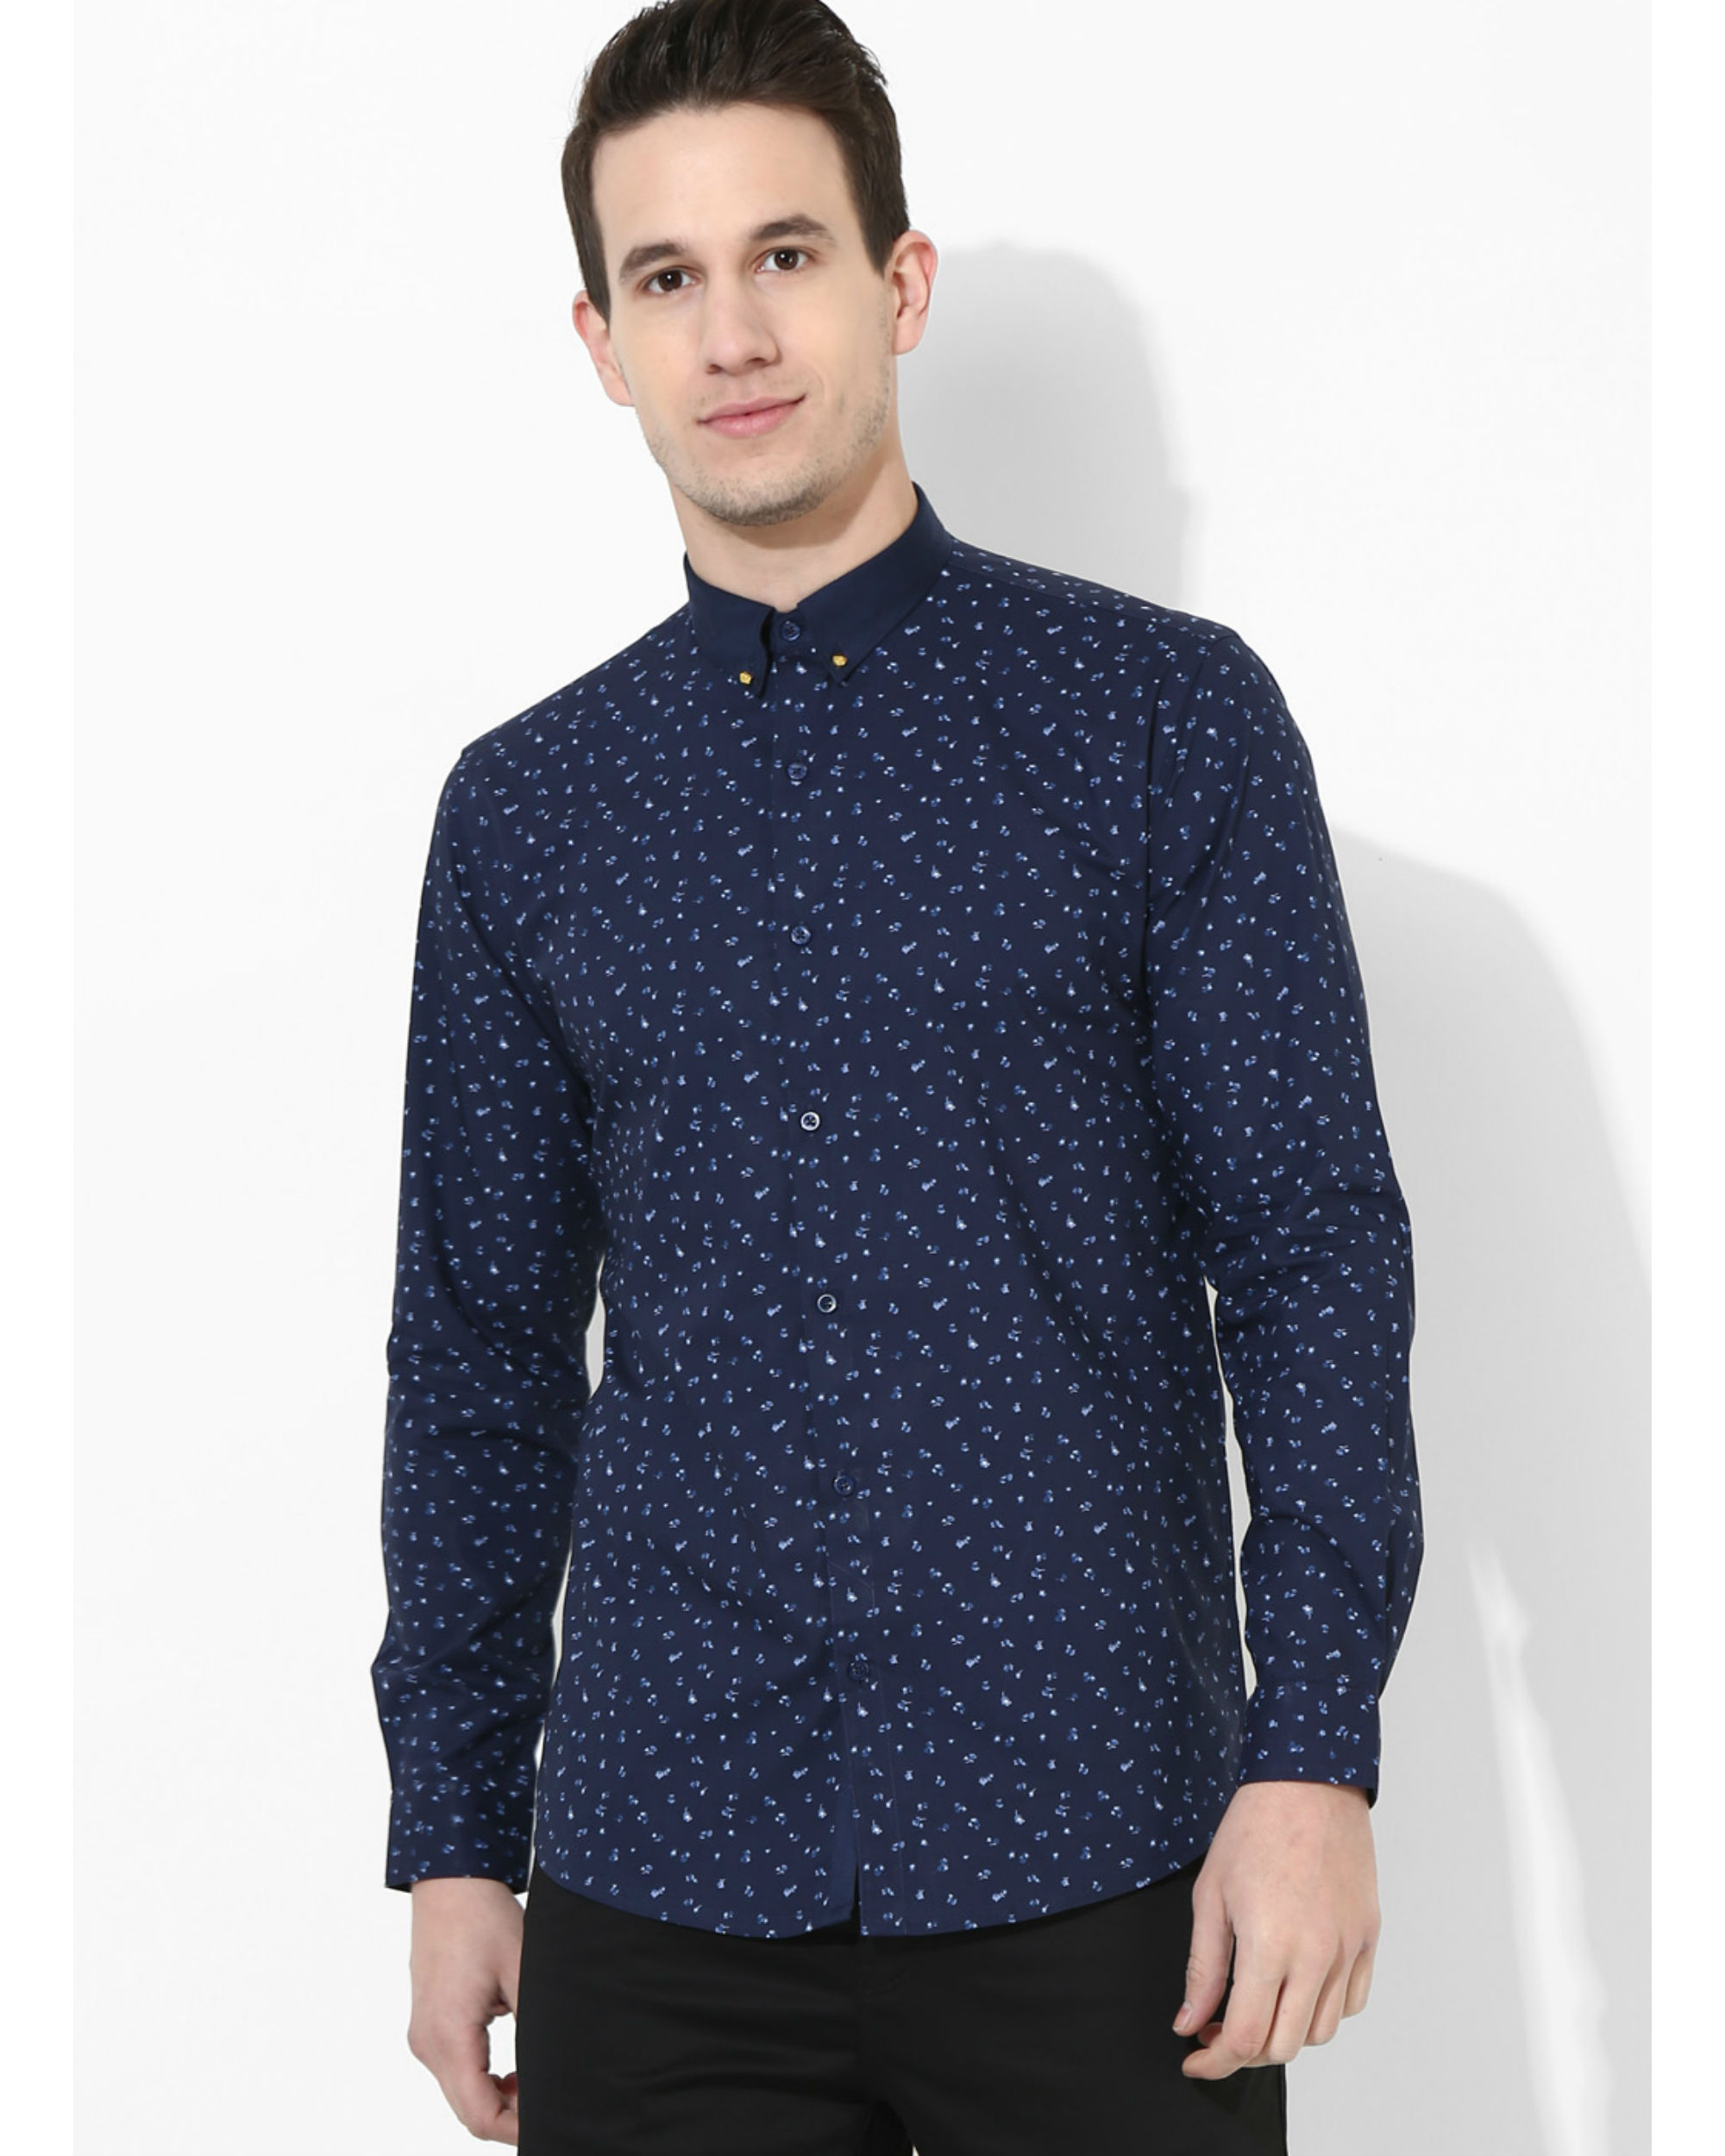 Printed Navy Blue Golden Button Shirt